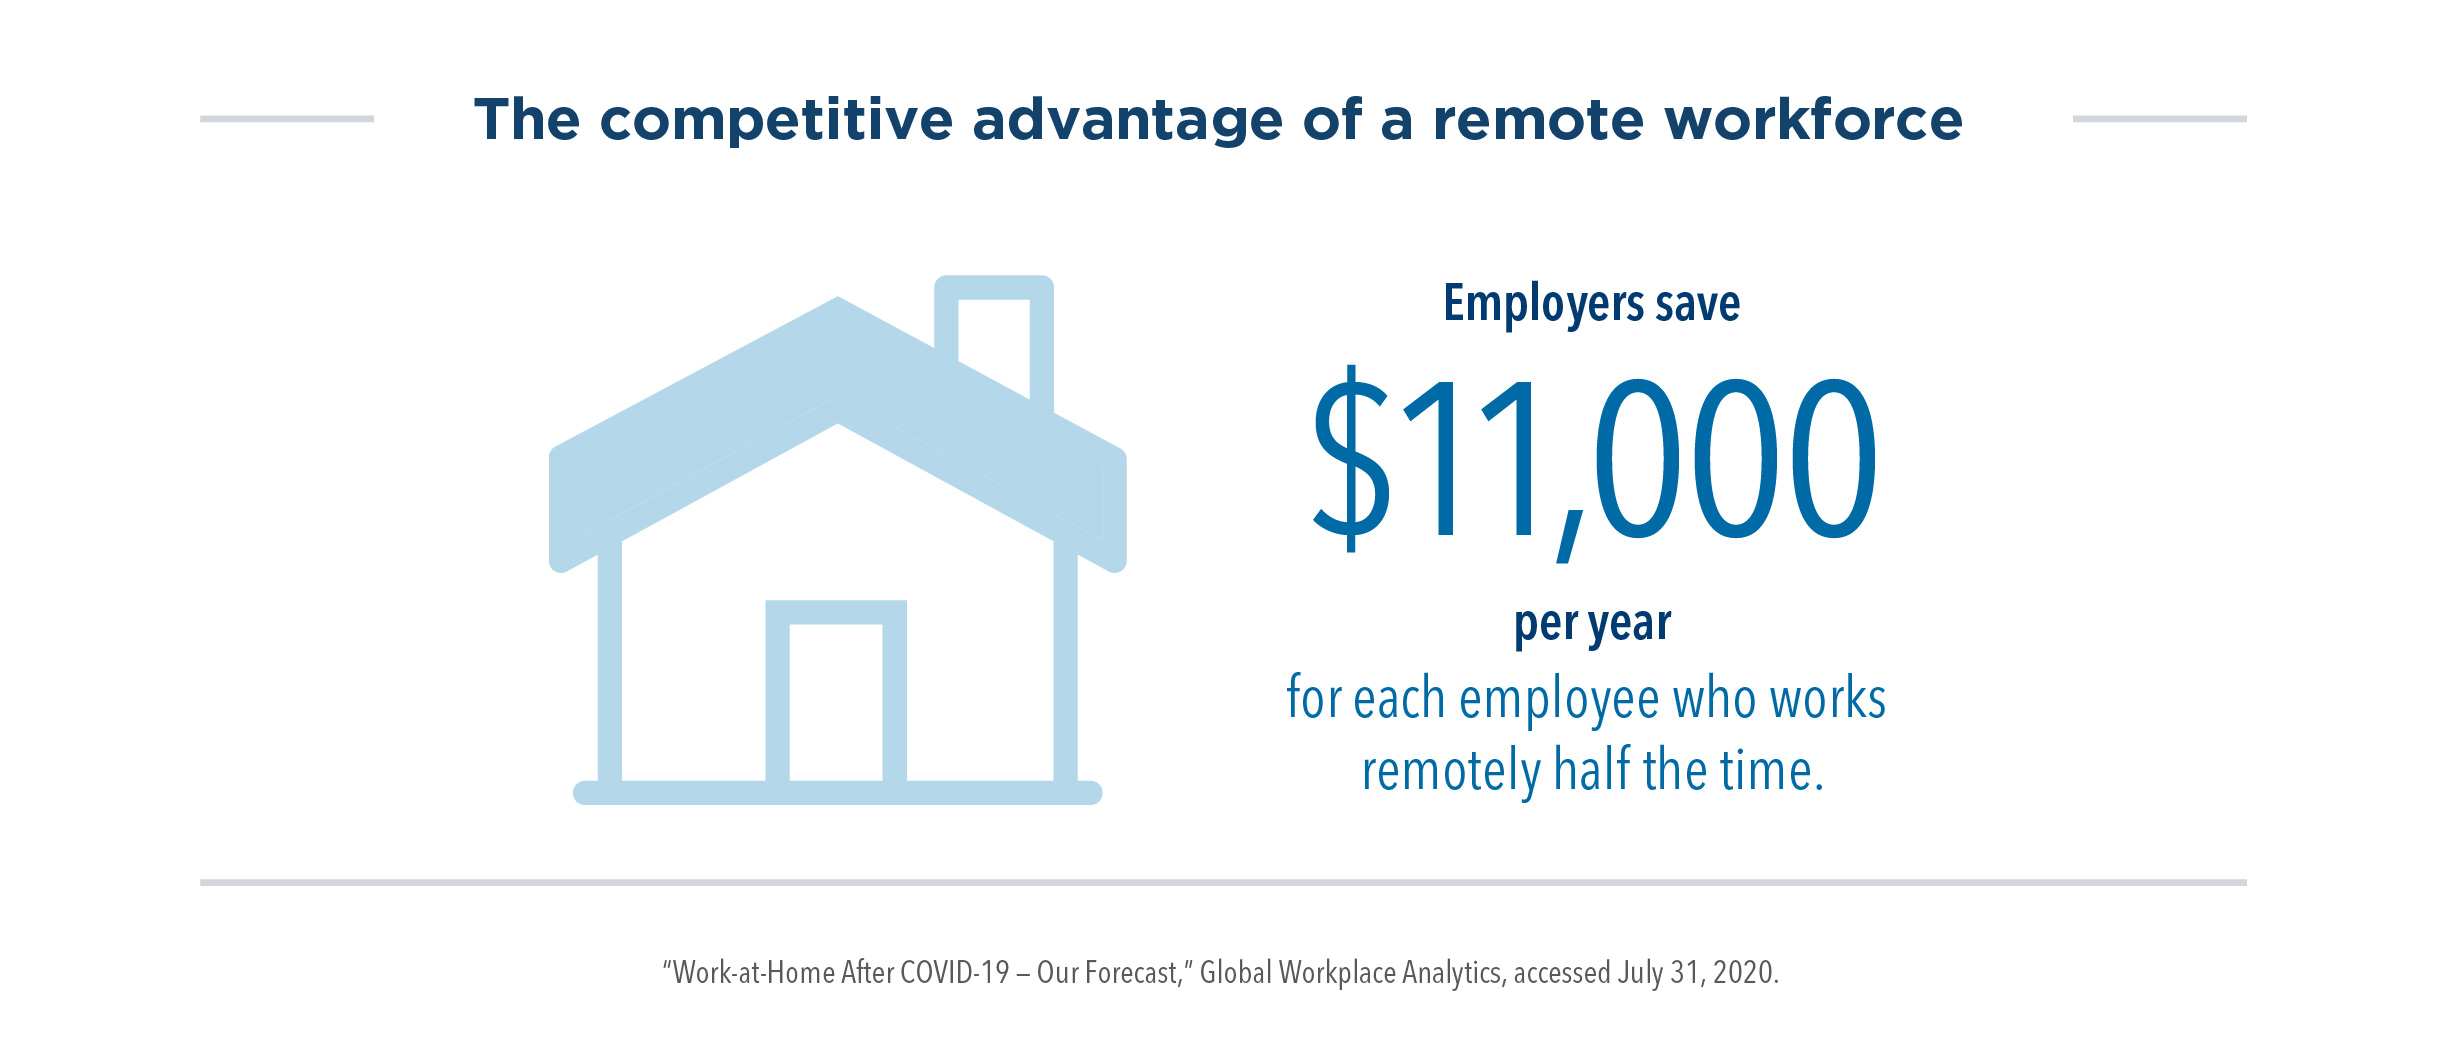 The competitive advantage of a remote workforce: Employers save $11,000 per year for each employee who works remotely half the time.